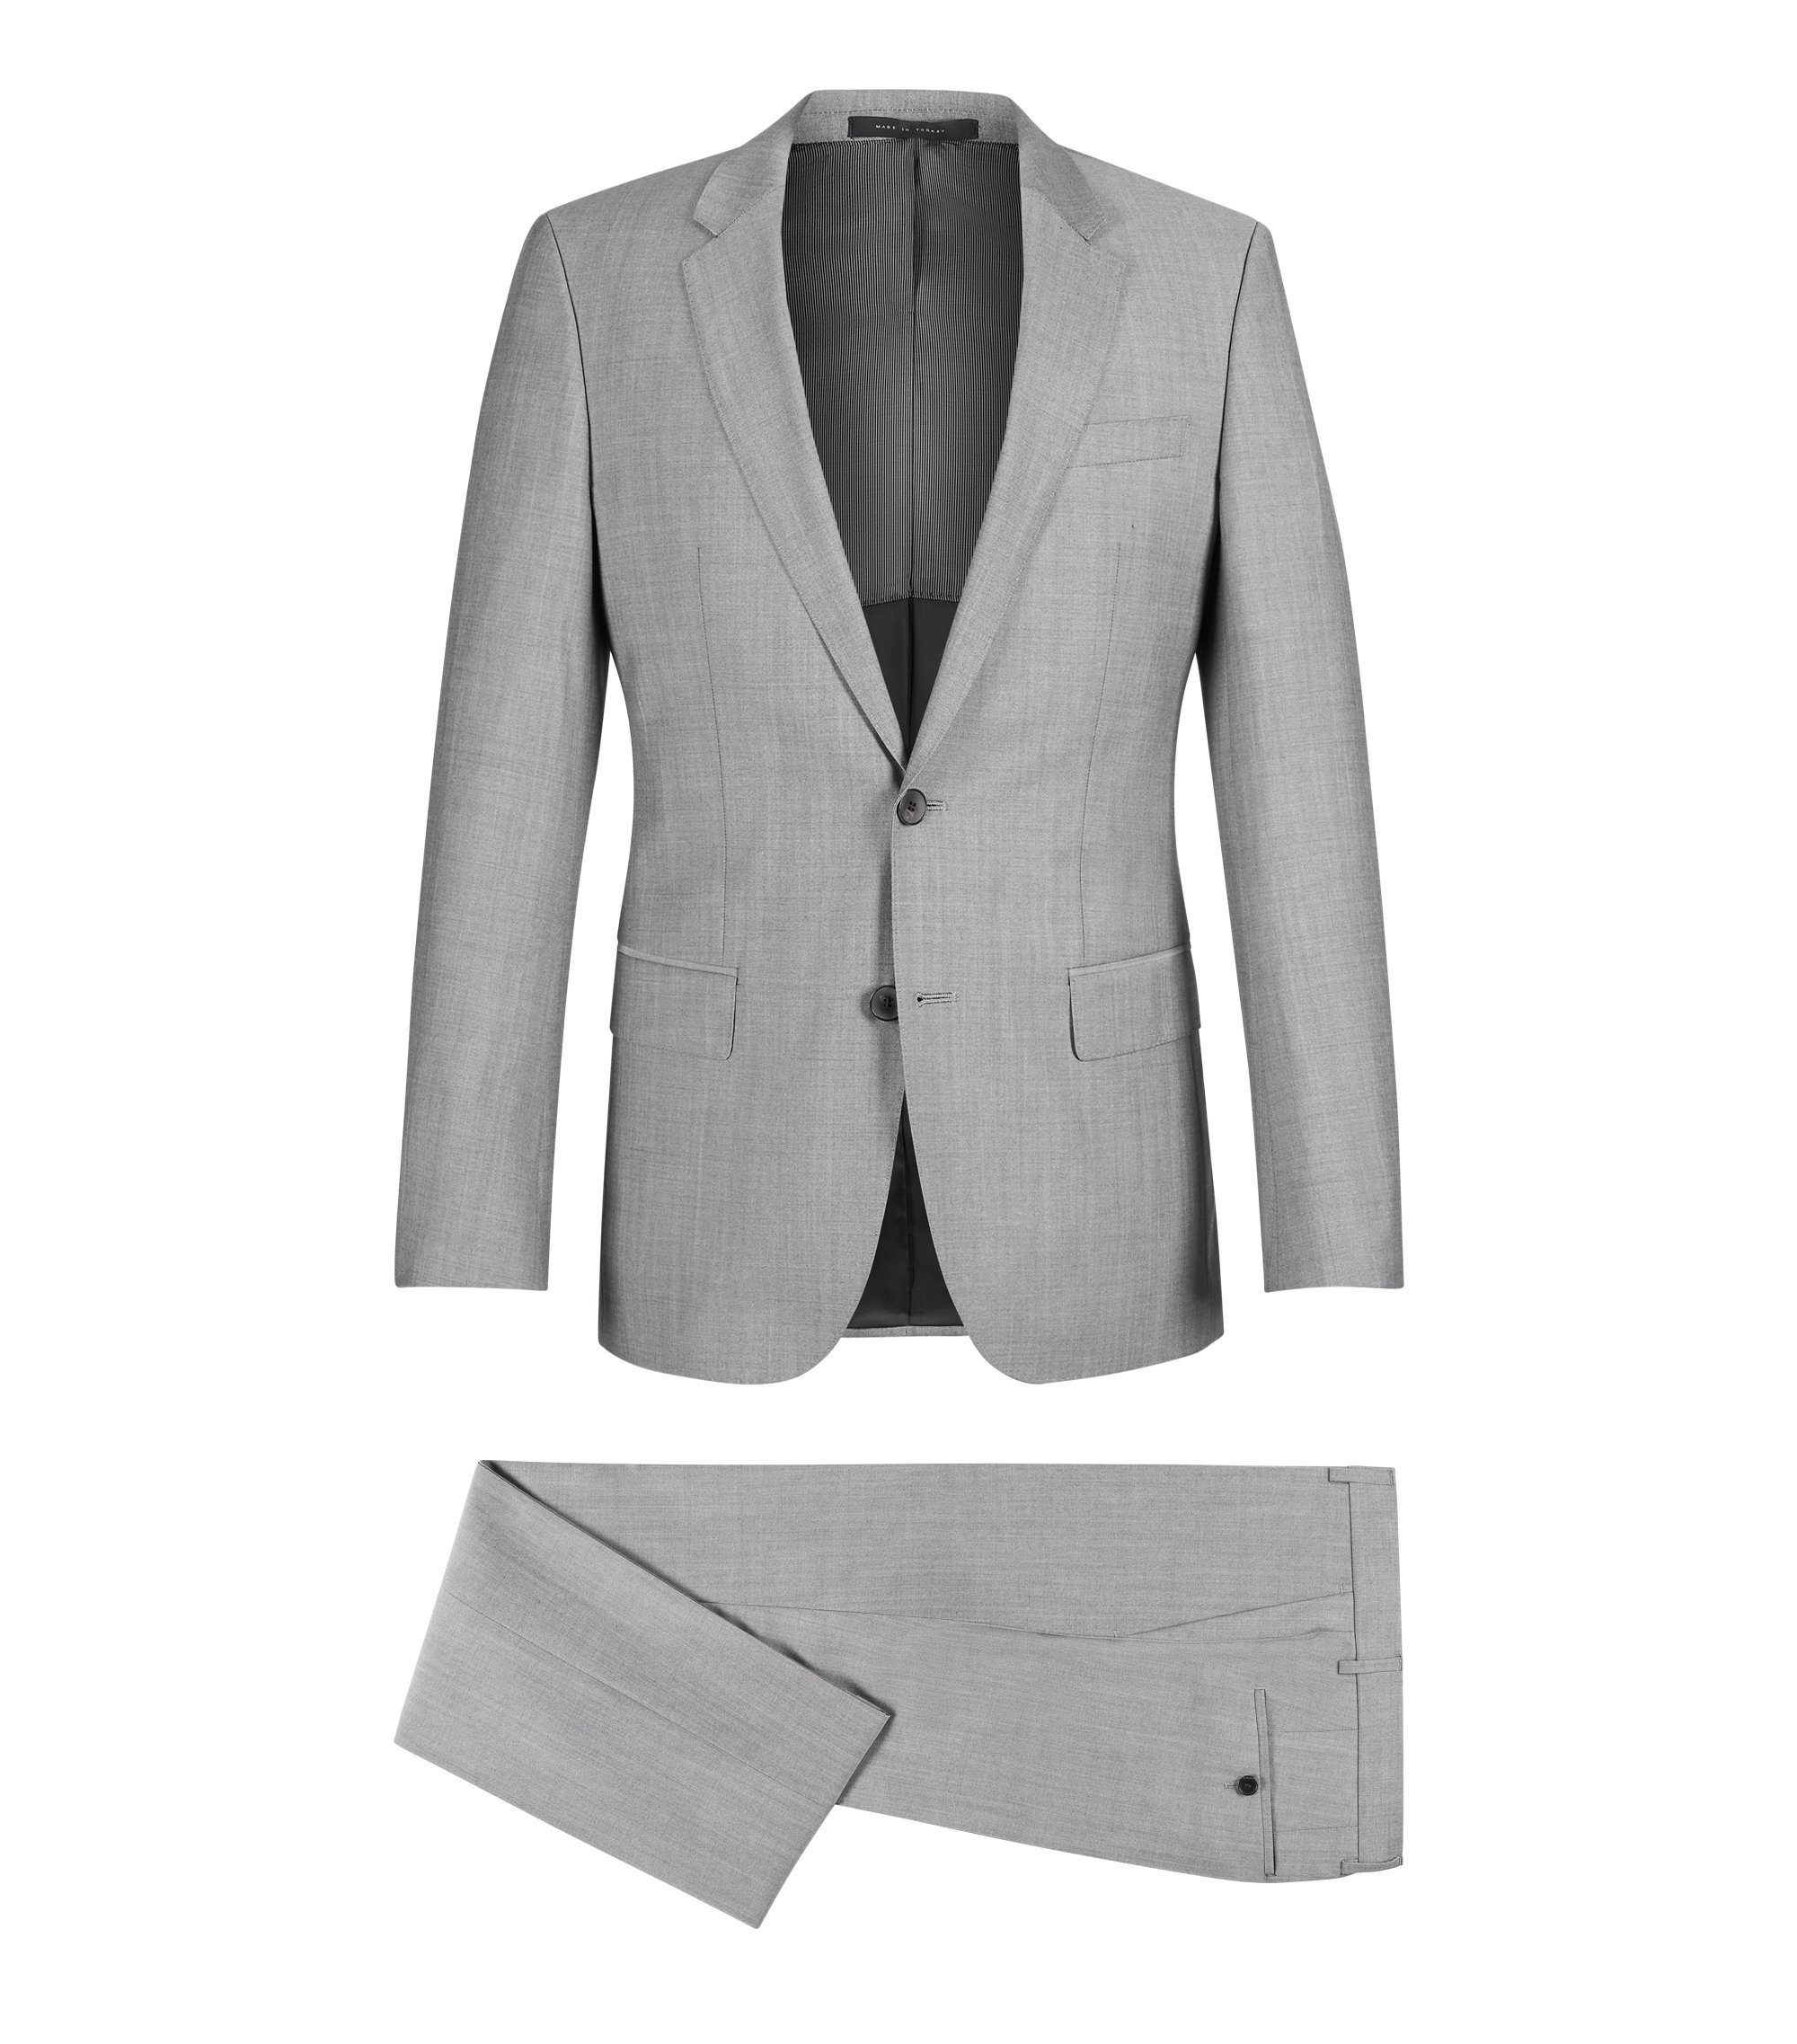 Italian Virgin Wool Suit, Slim Fit | Huge/Genius, Open Grey